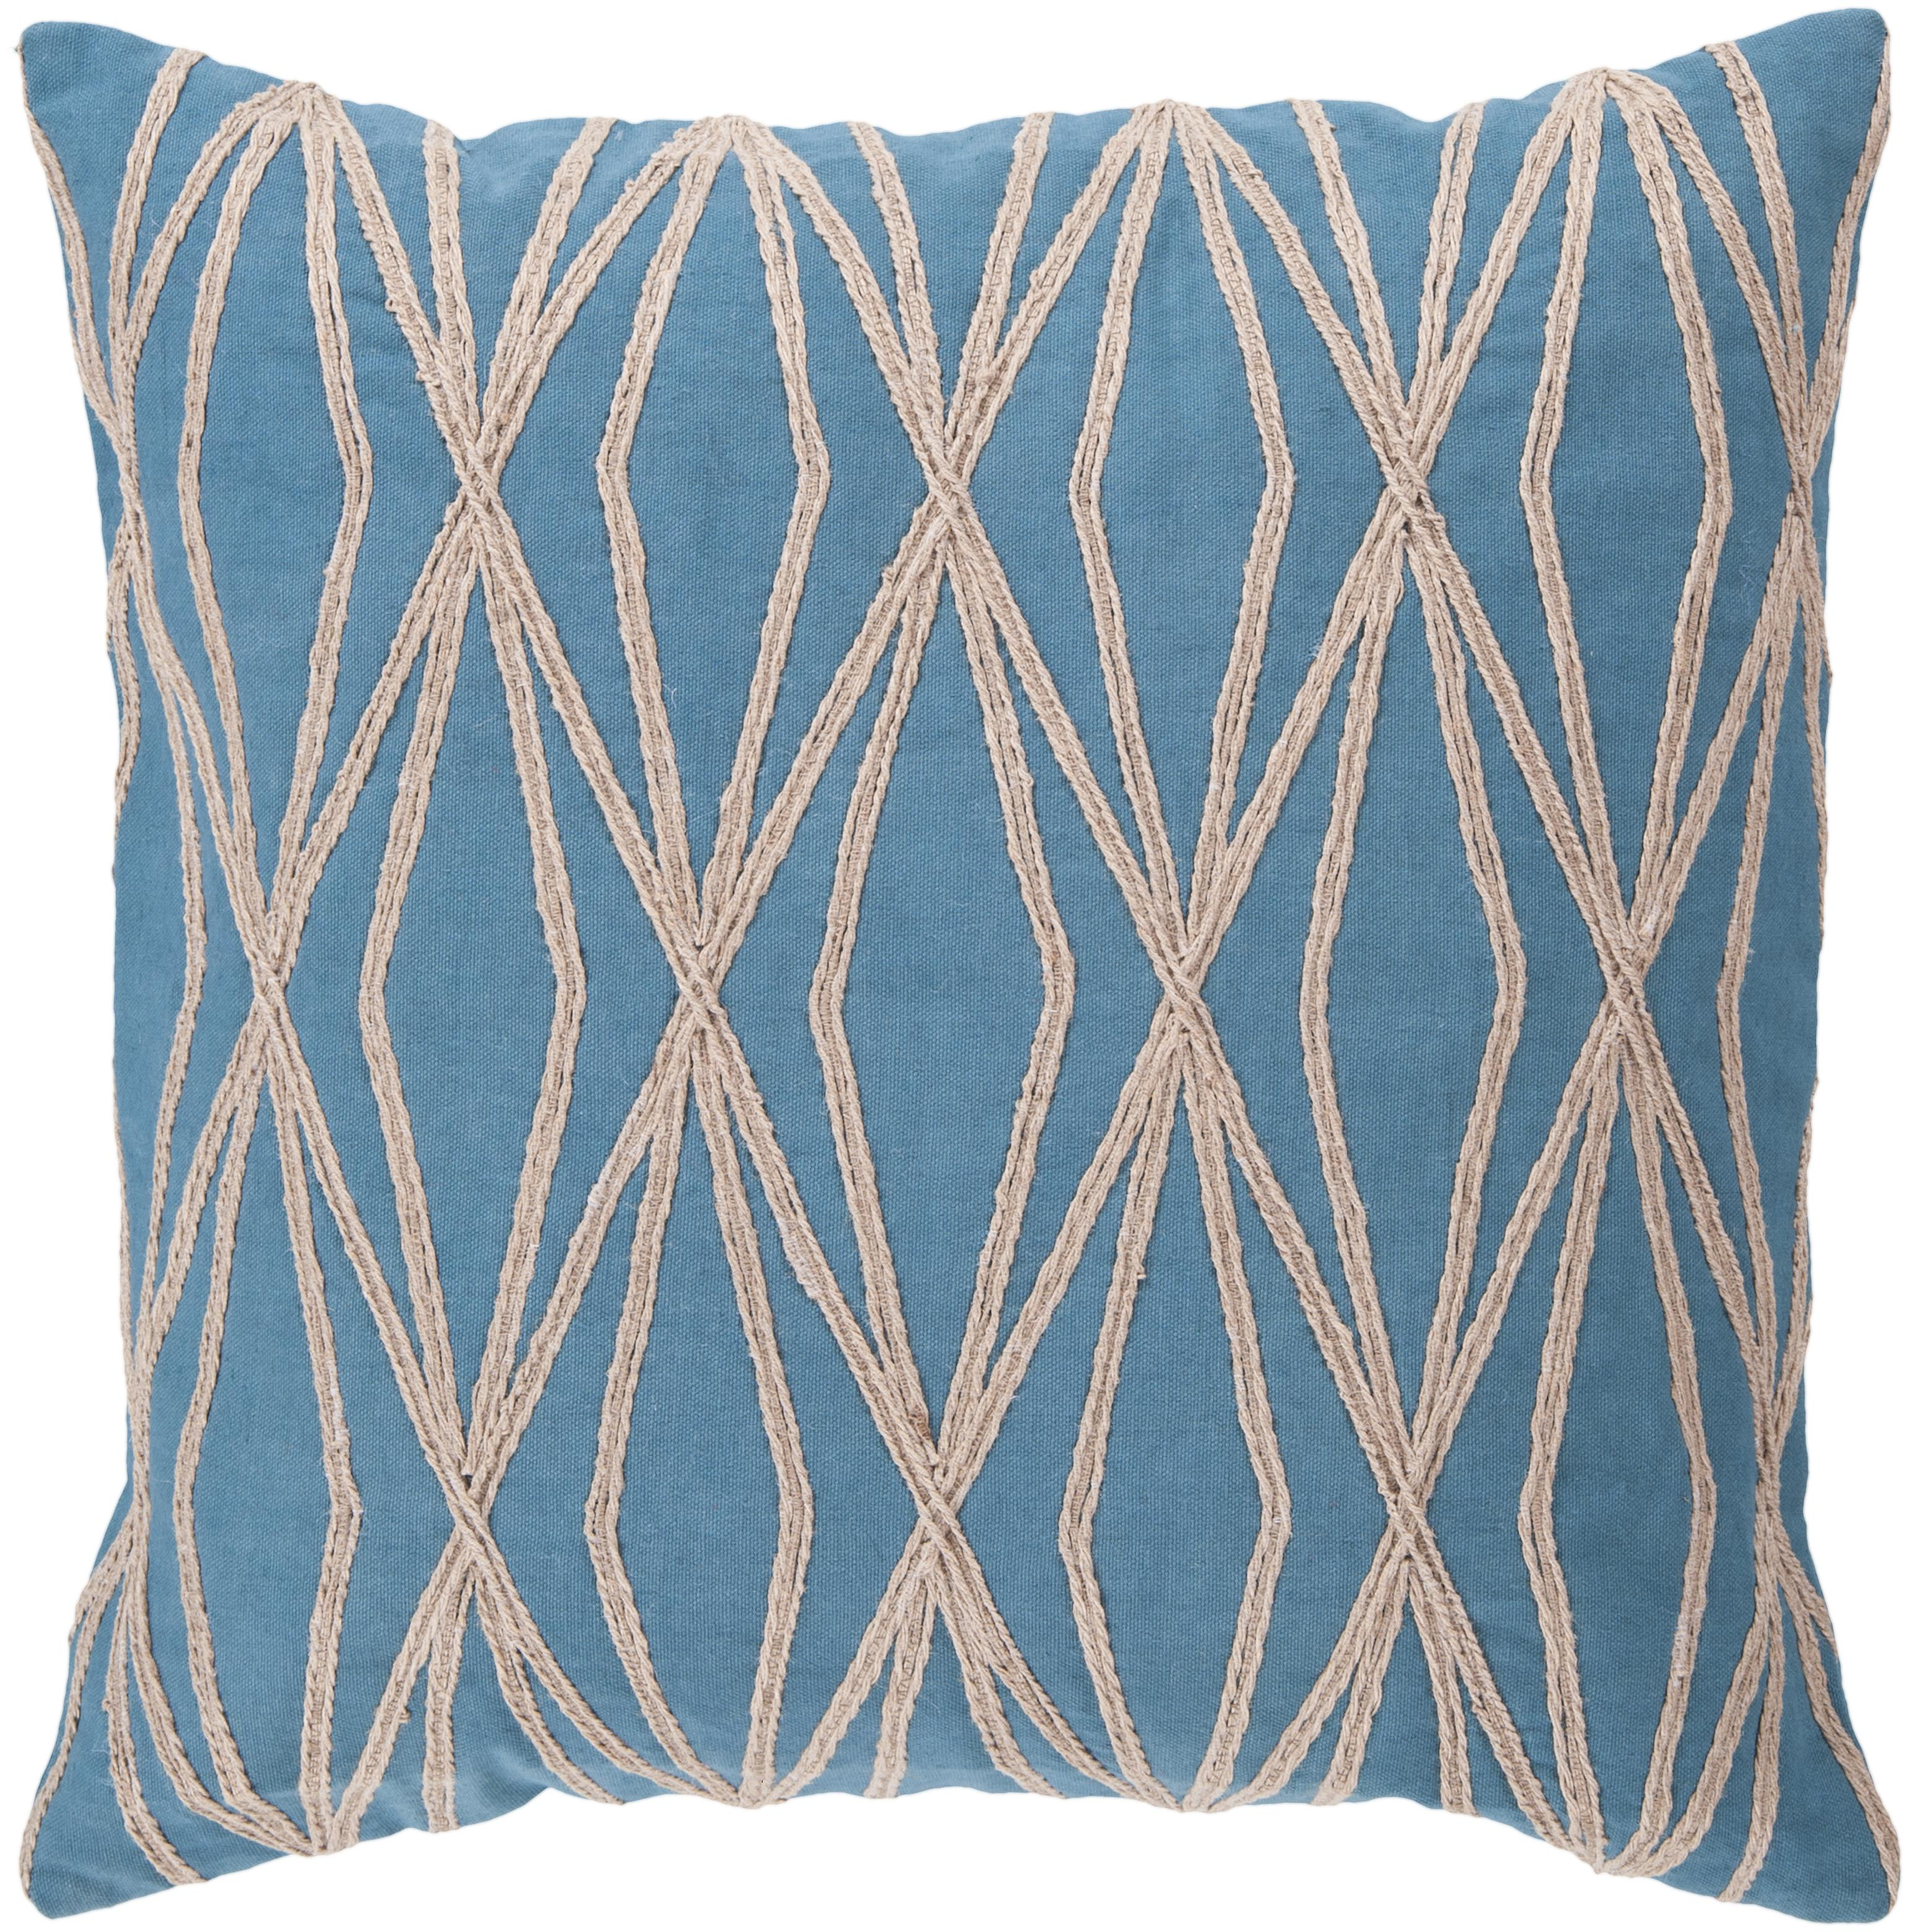 "Surya Rugs Pillows 18"" x 18"" Pillow - Item Number: COM022-1818P"